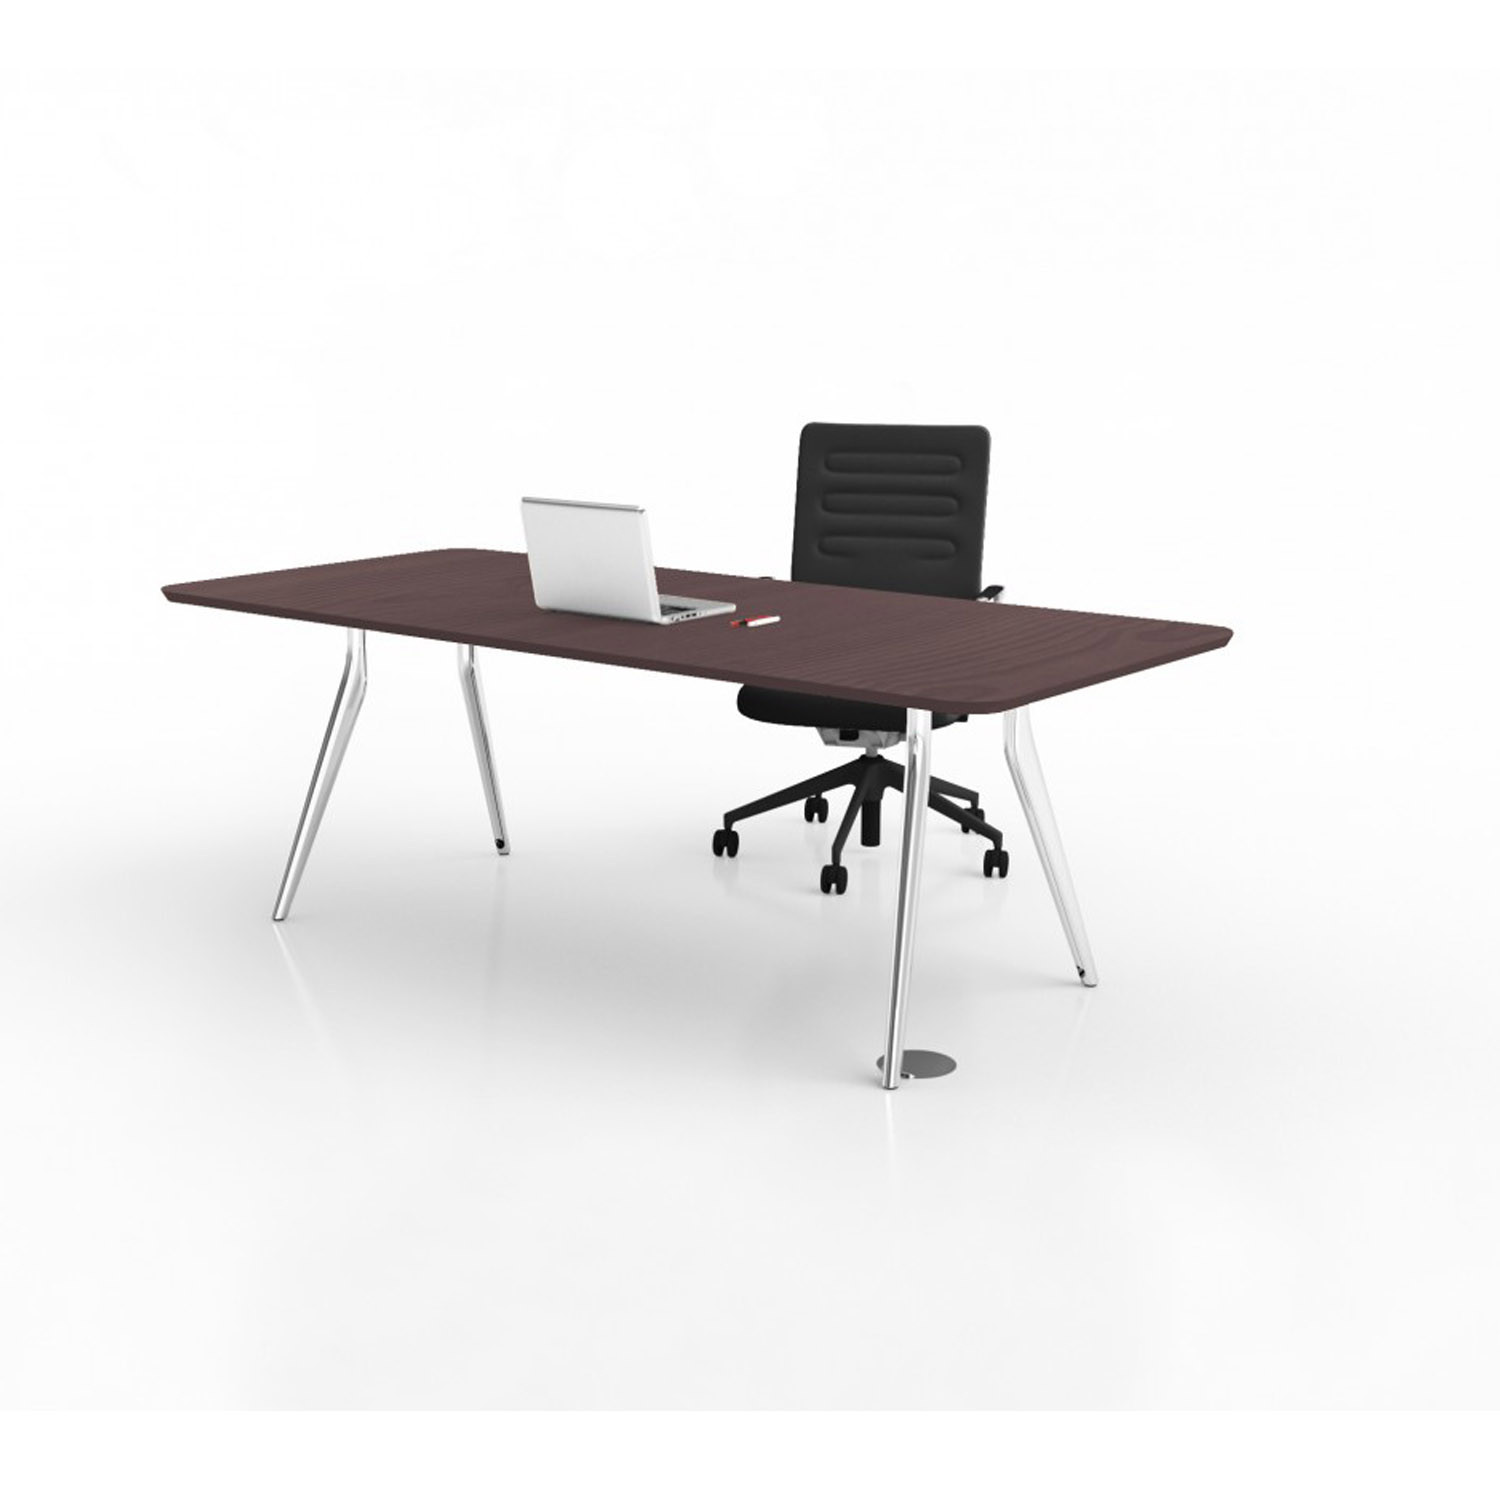 Eona Chilli Desk